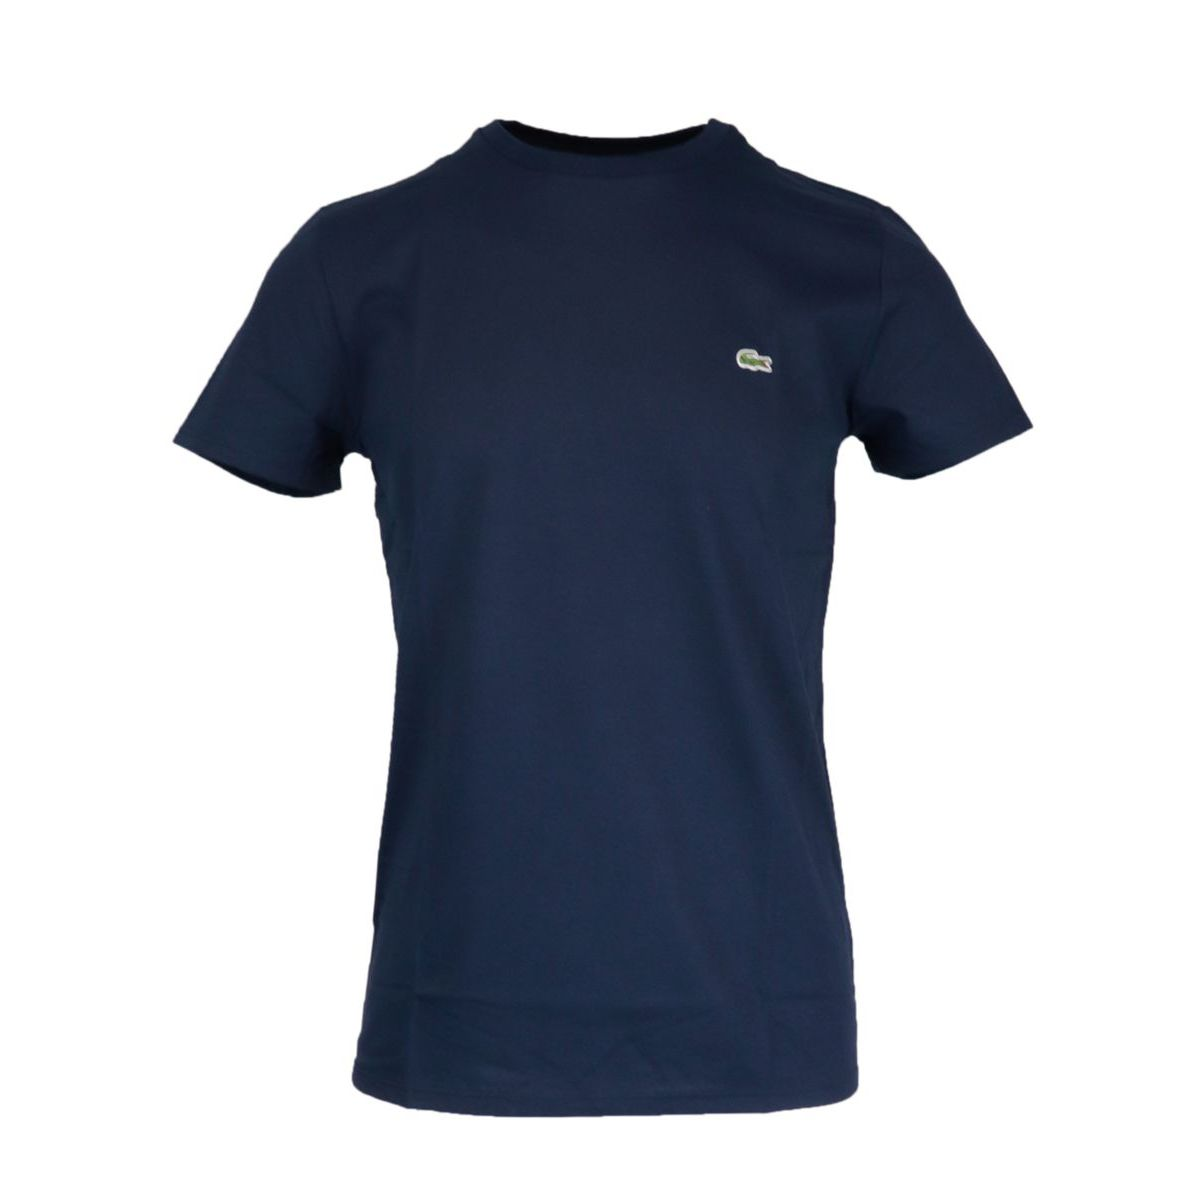 Regular cotton T-shirt with small logo applied Navy Lacoste